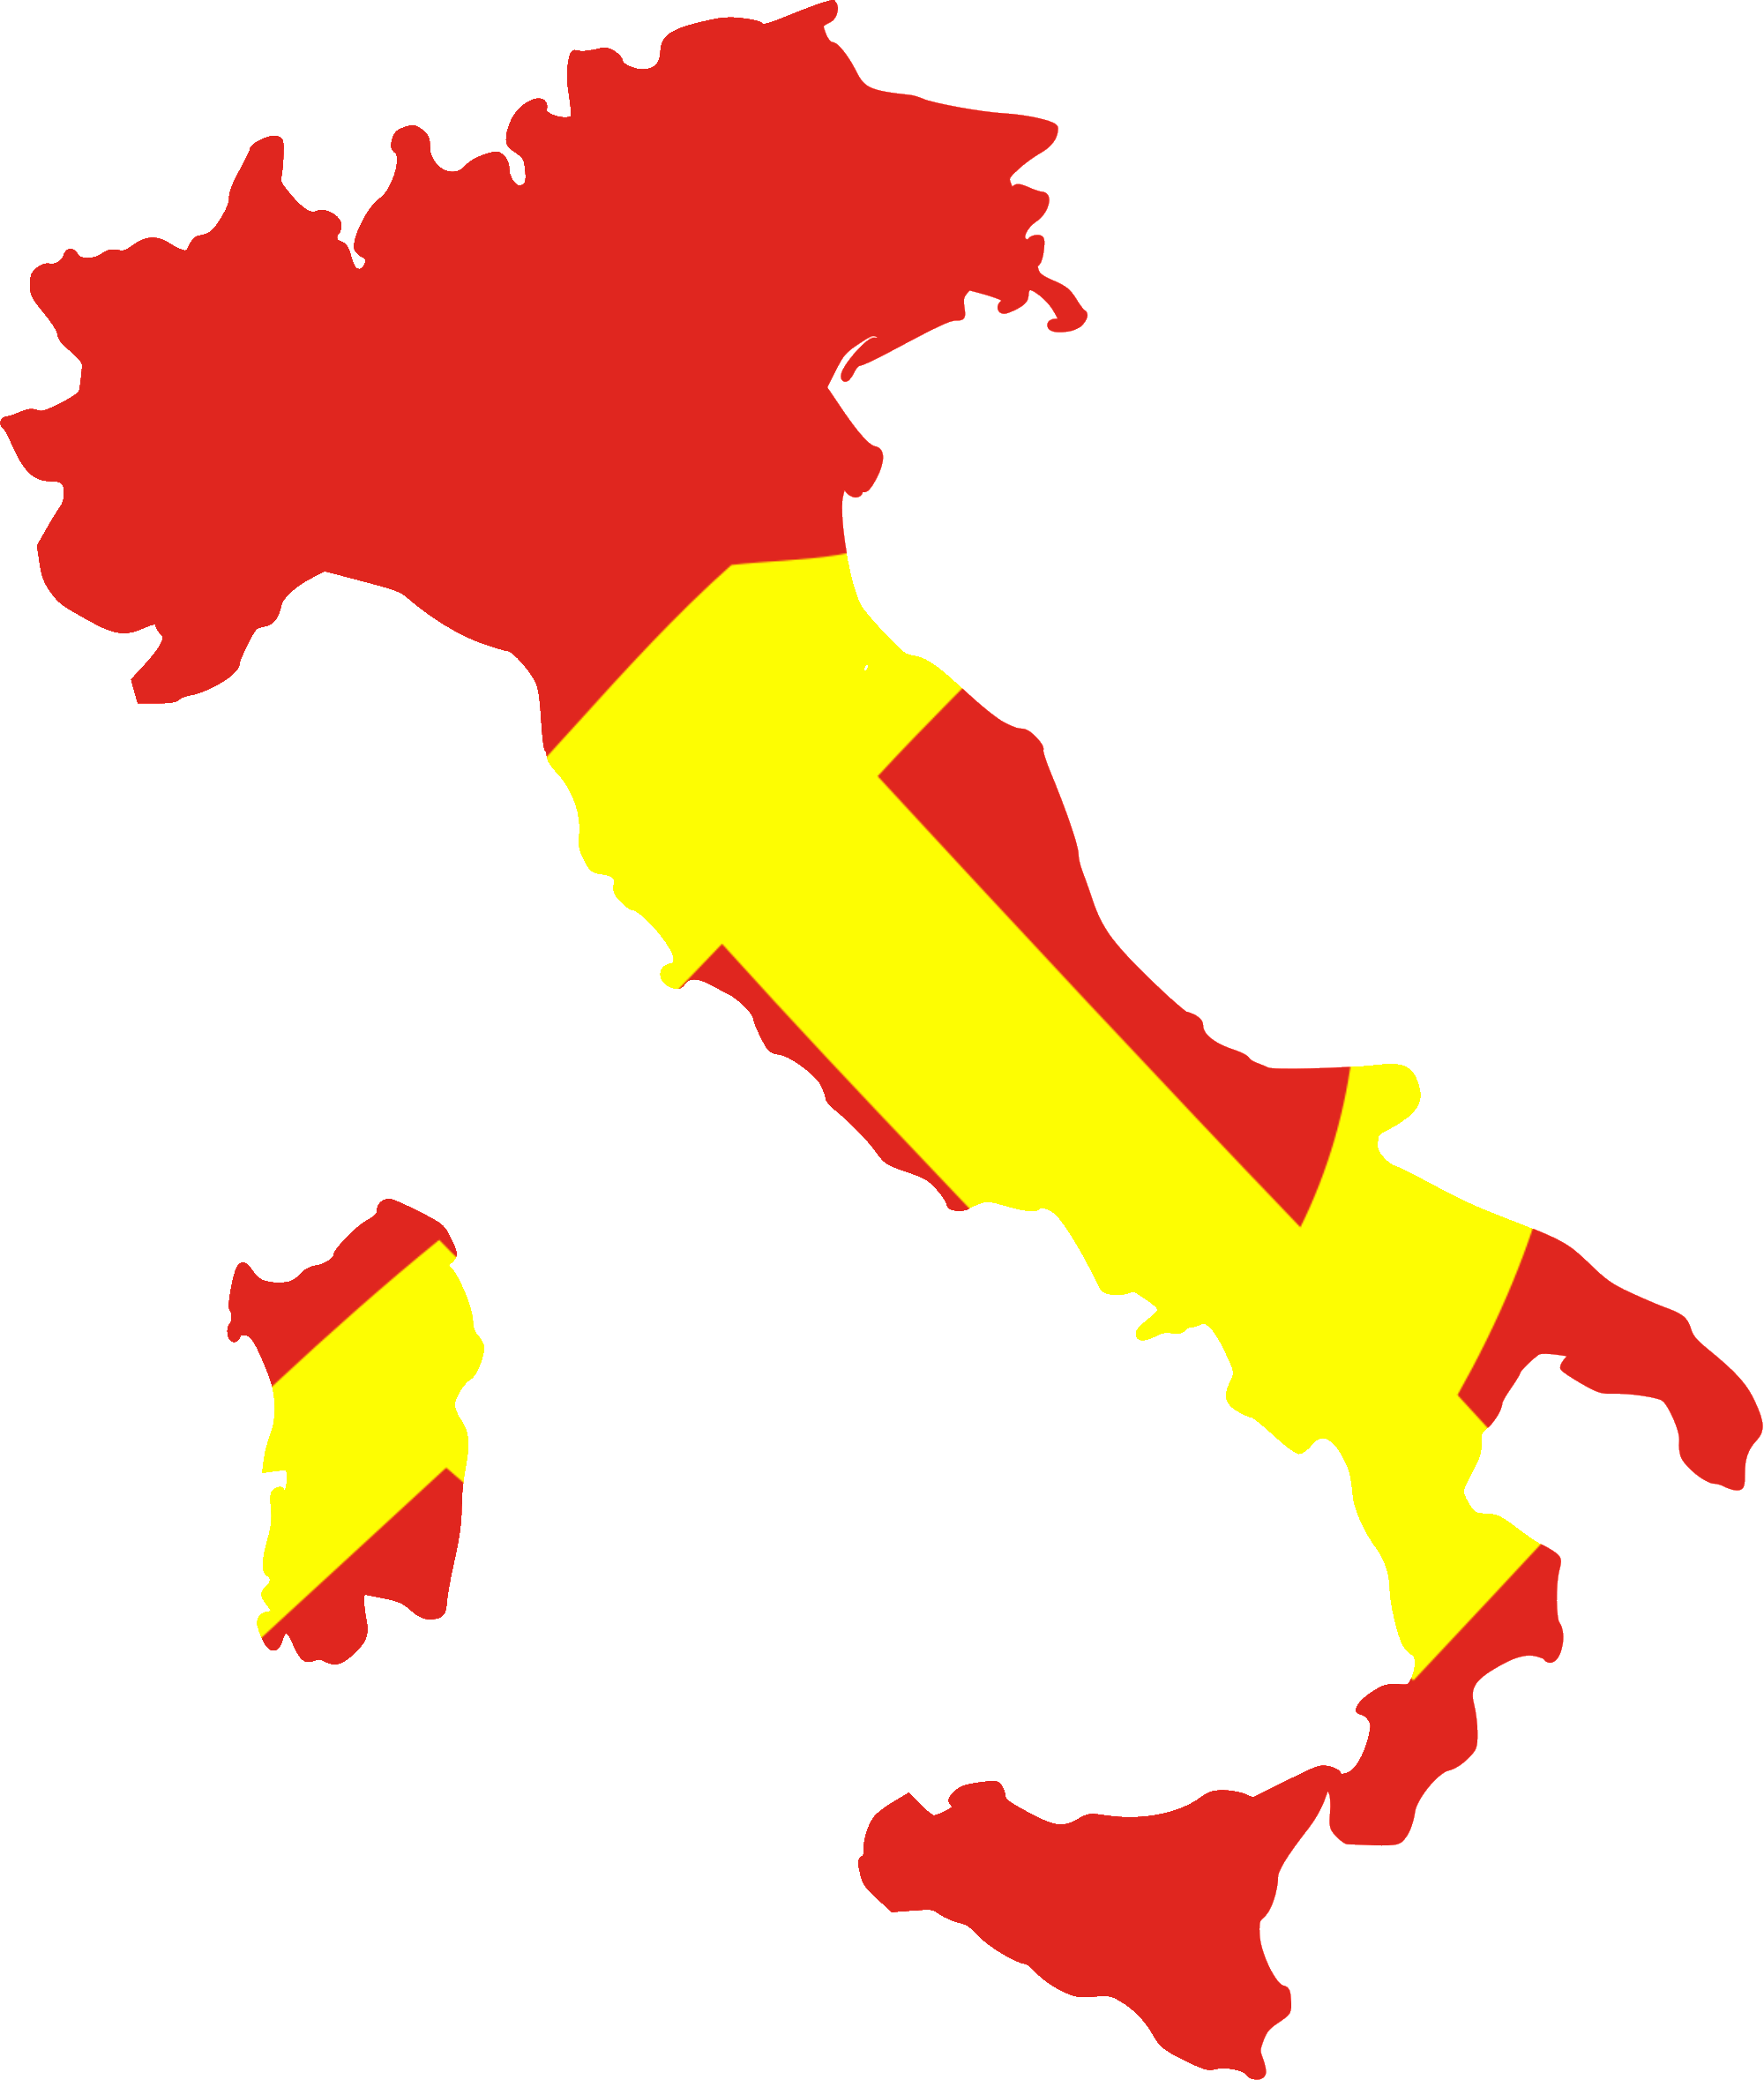 Italy map png